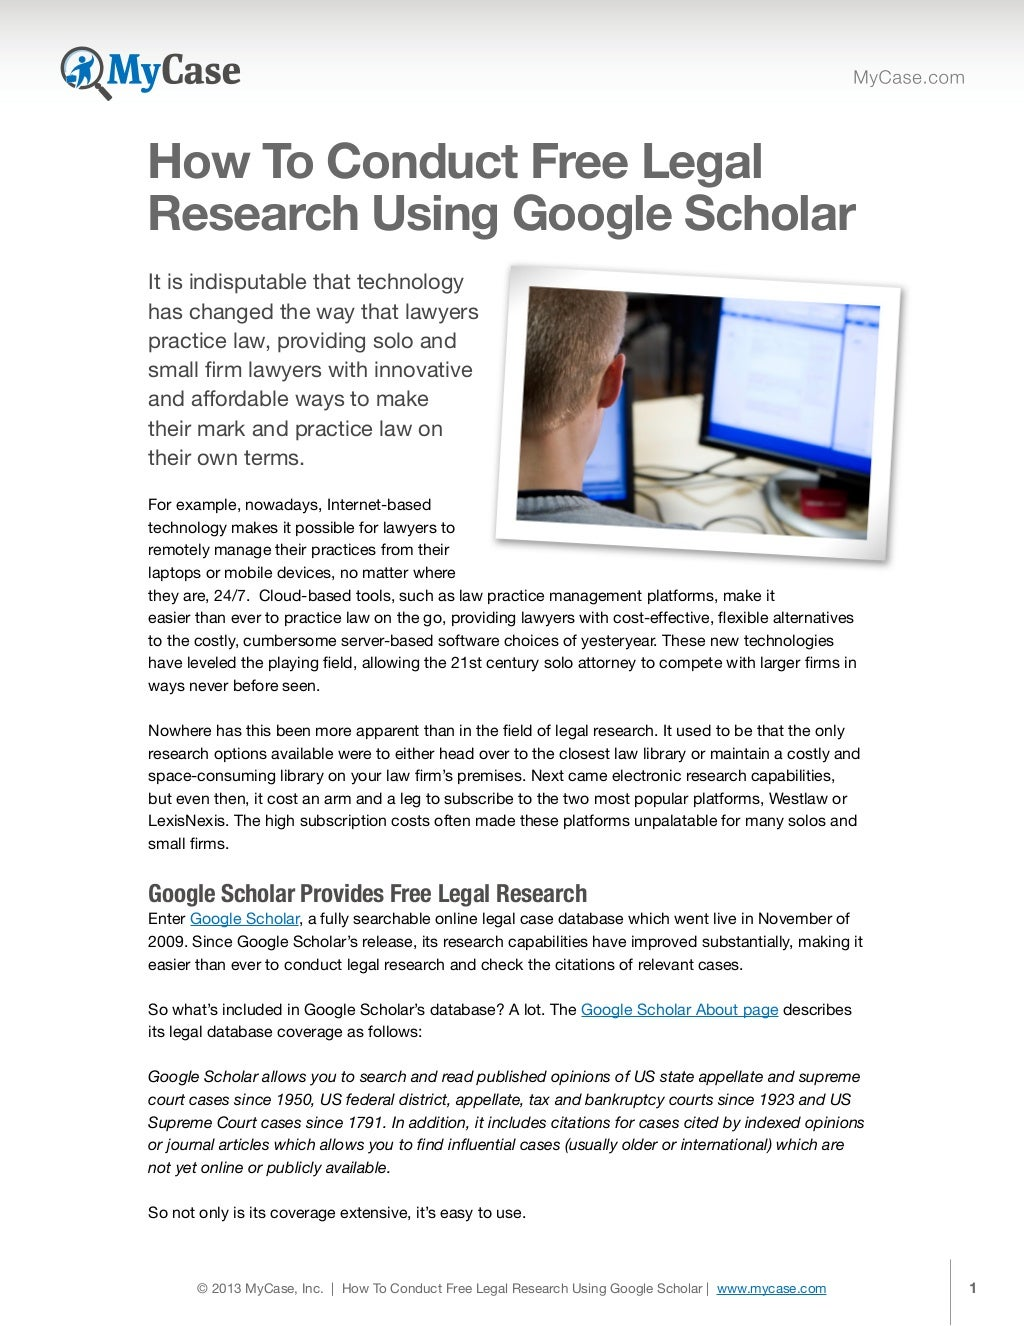 How To Conduct Free Legal Research Using Google Scholar